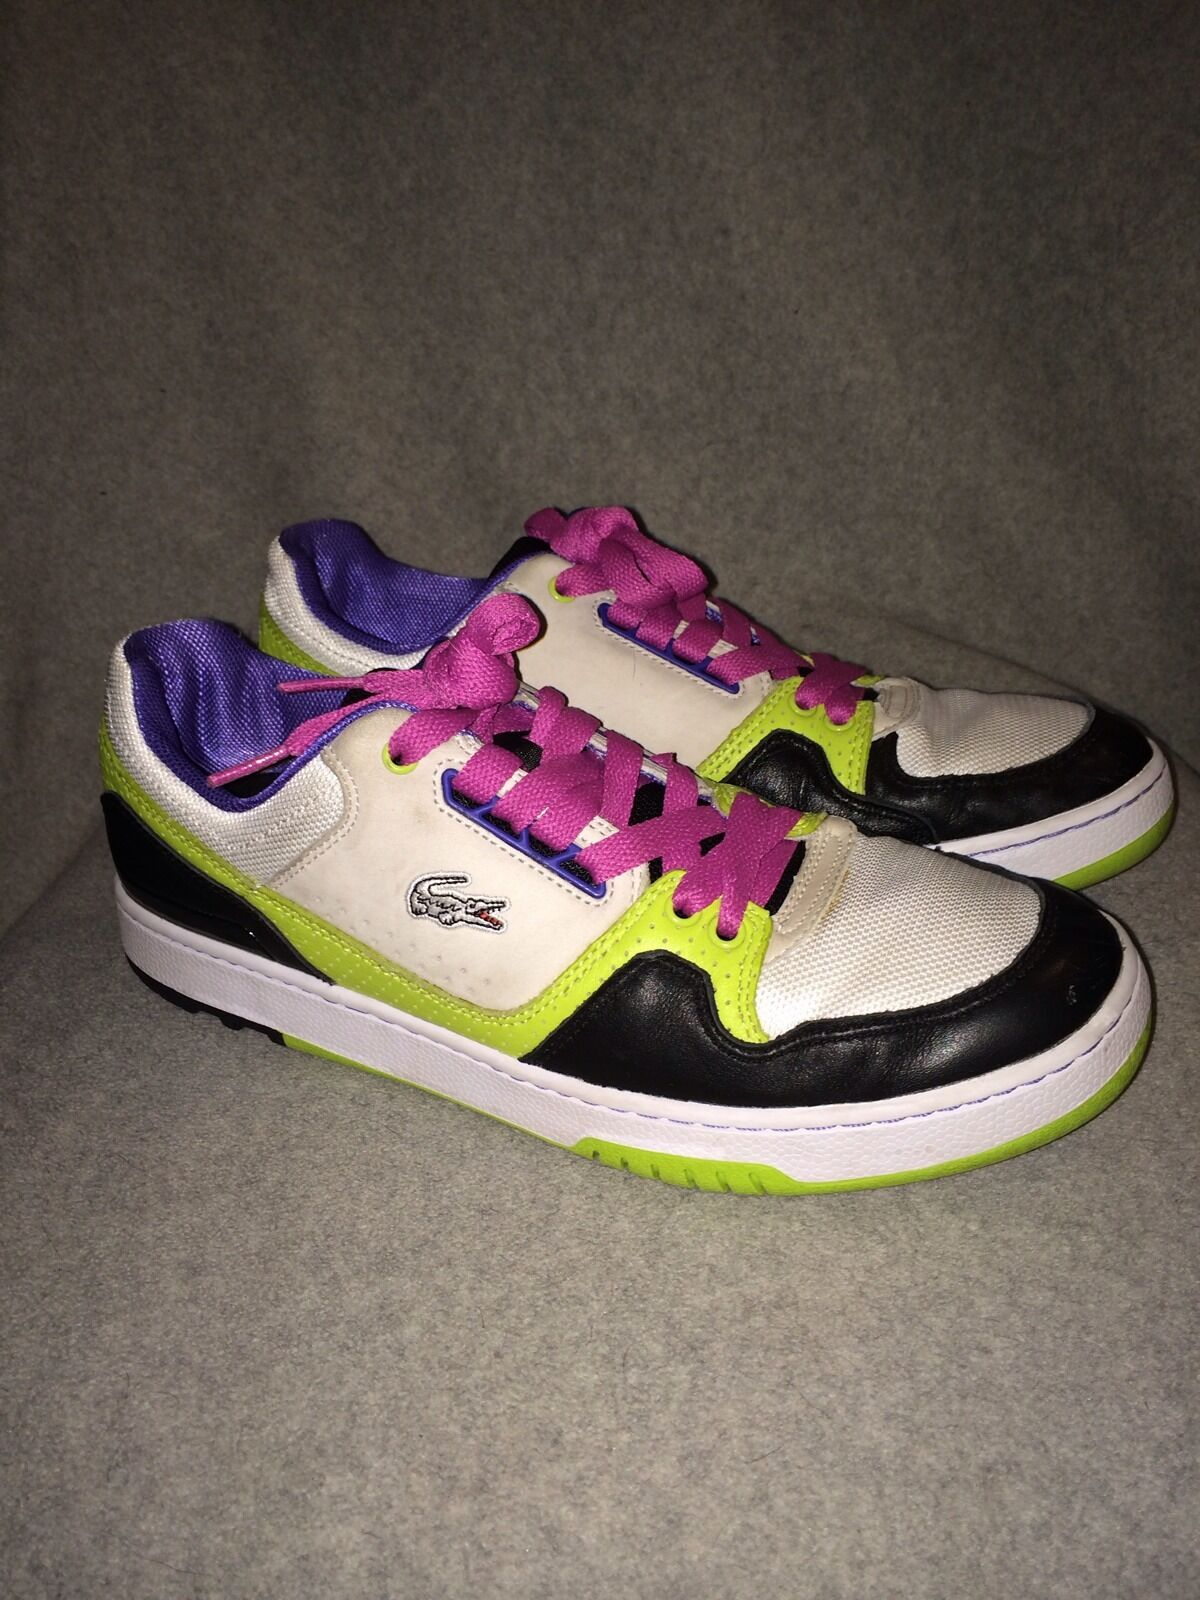 Lacoste Men's 9 1/2 Causual Bright Color Mississippi sneakers, sneakers, sneakers, Great Condition! 857211